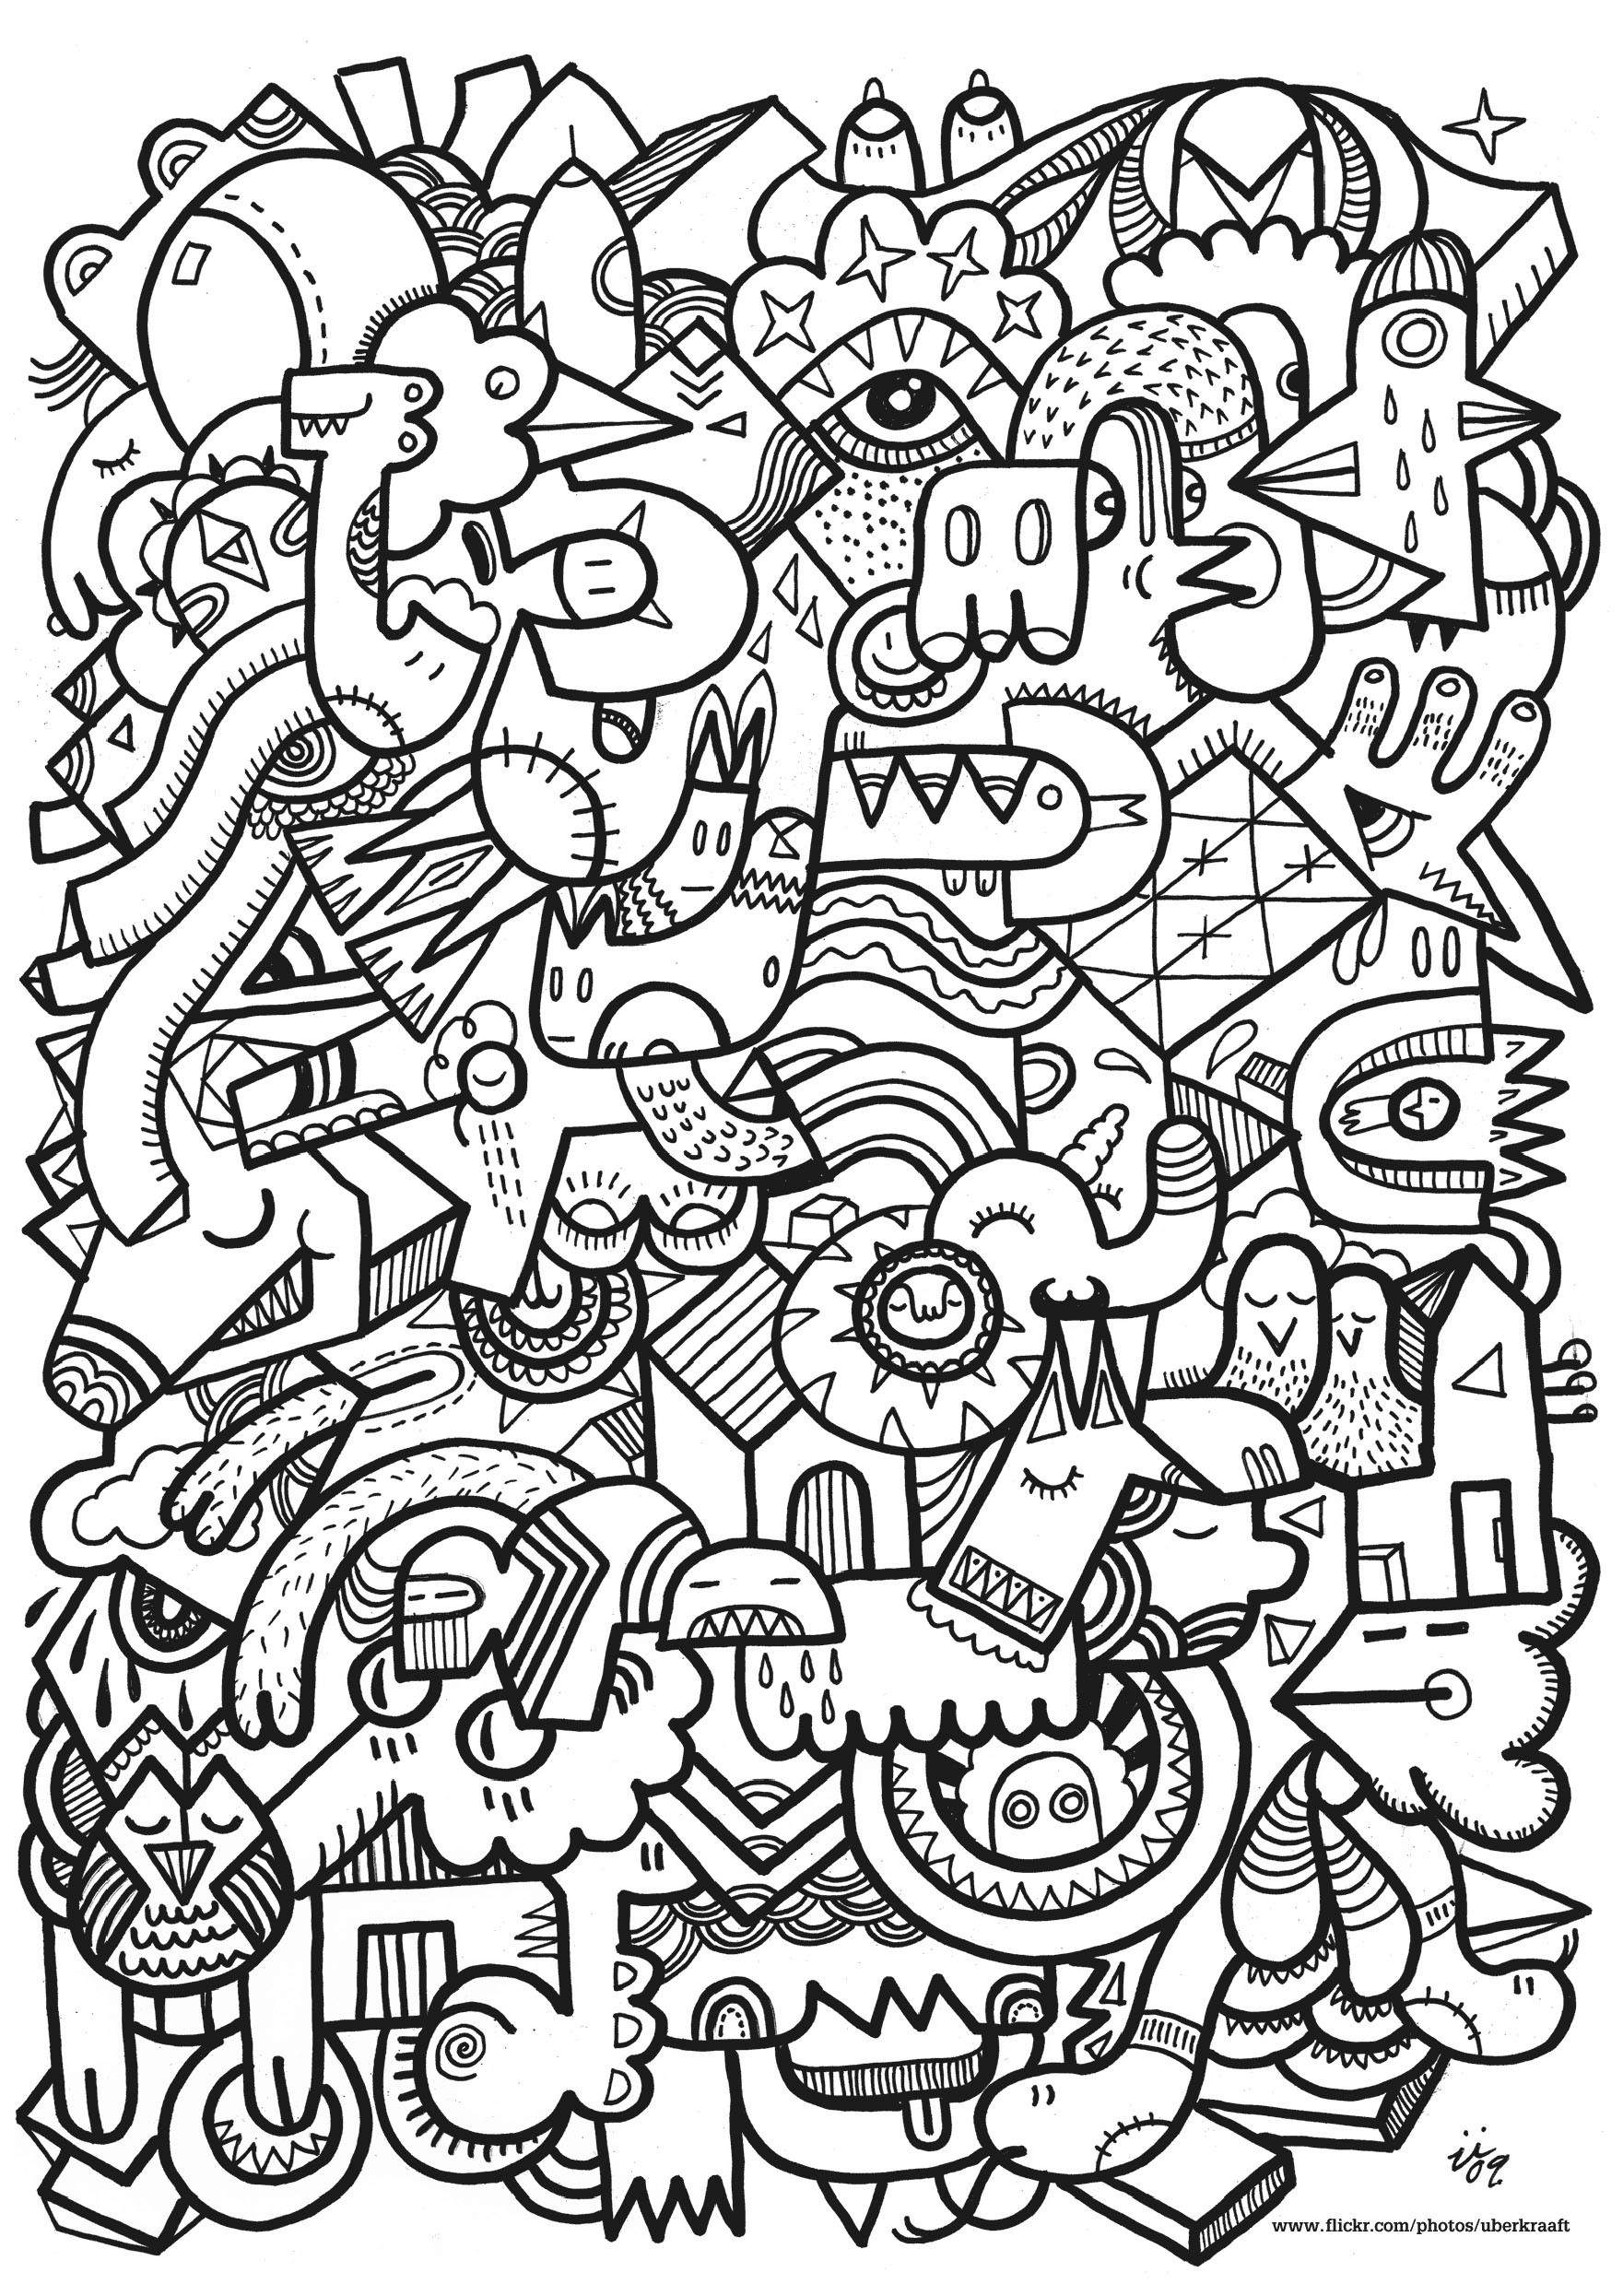 doodle art doodling 16 doodling doodle art coloring pages